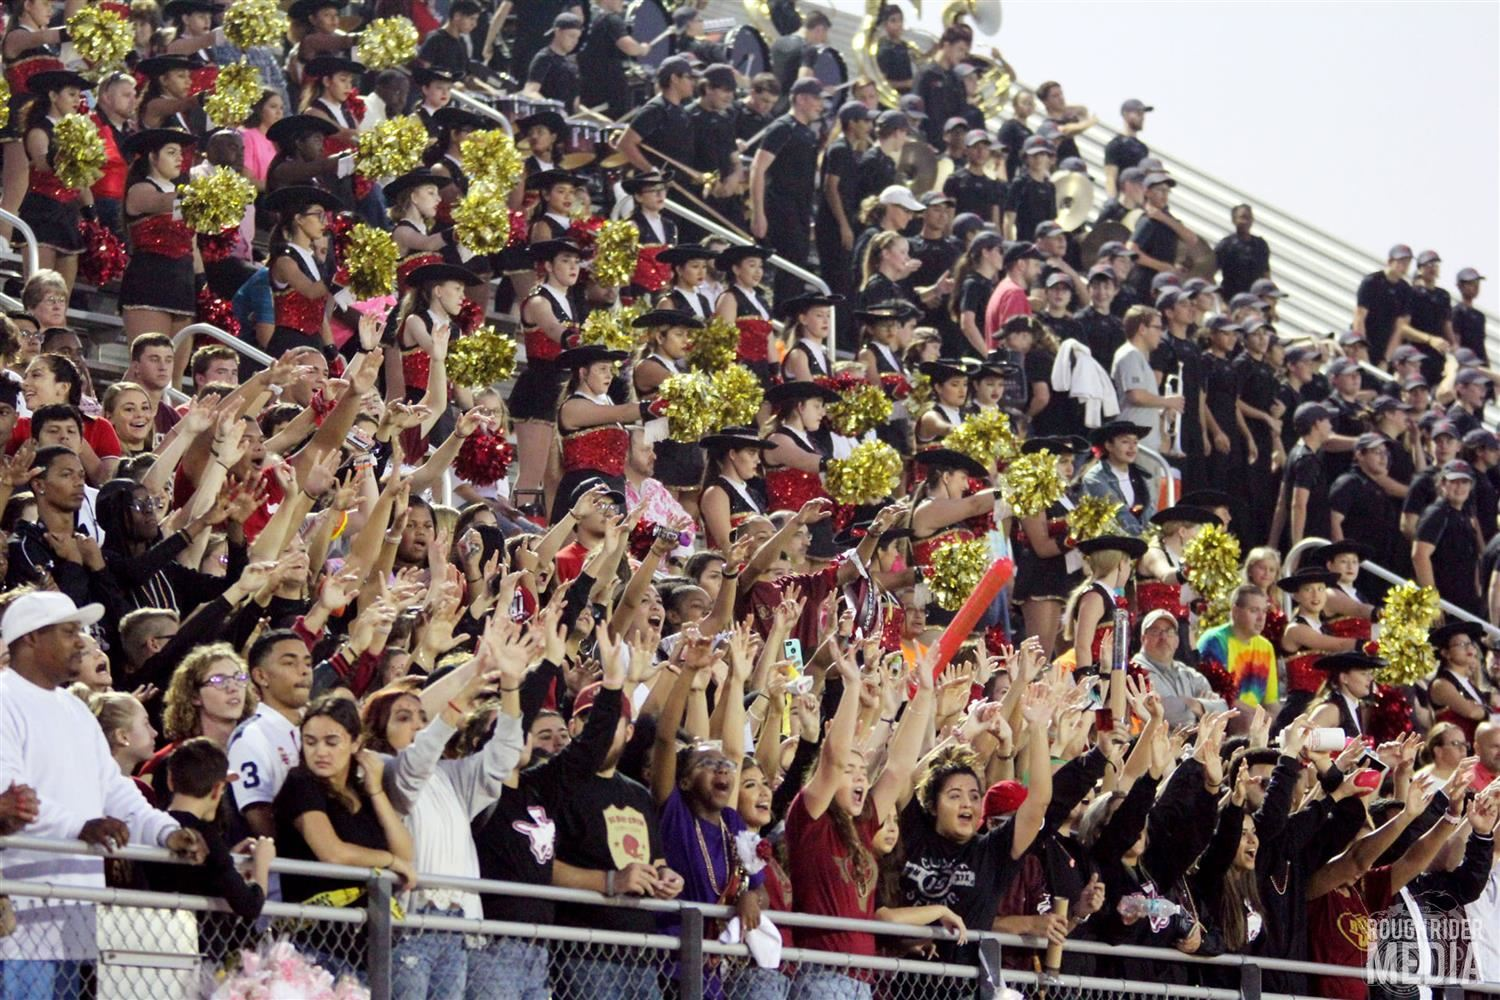 photo of student section at SHS football game courtesy of Rough Rider Media